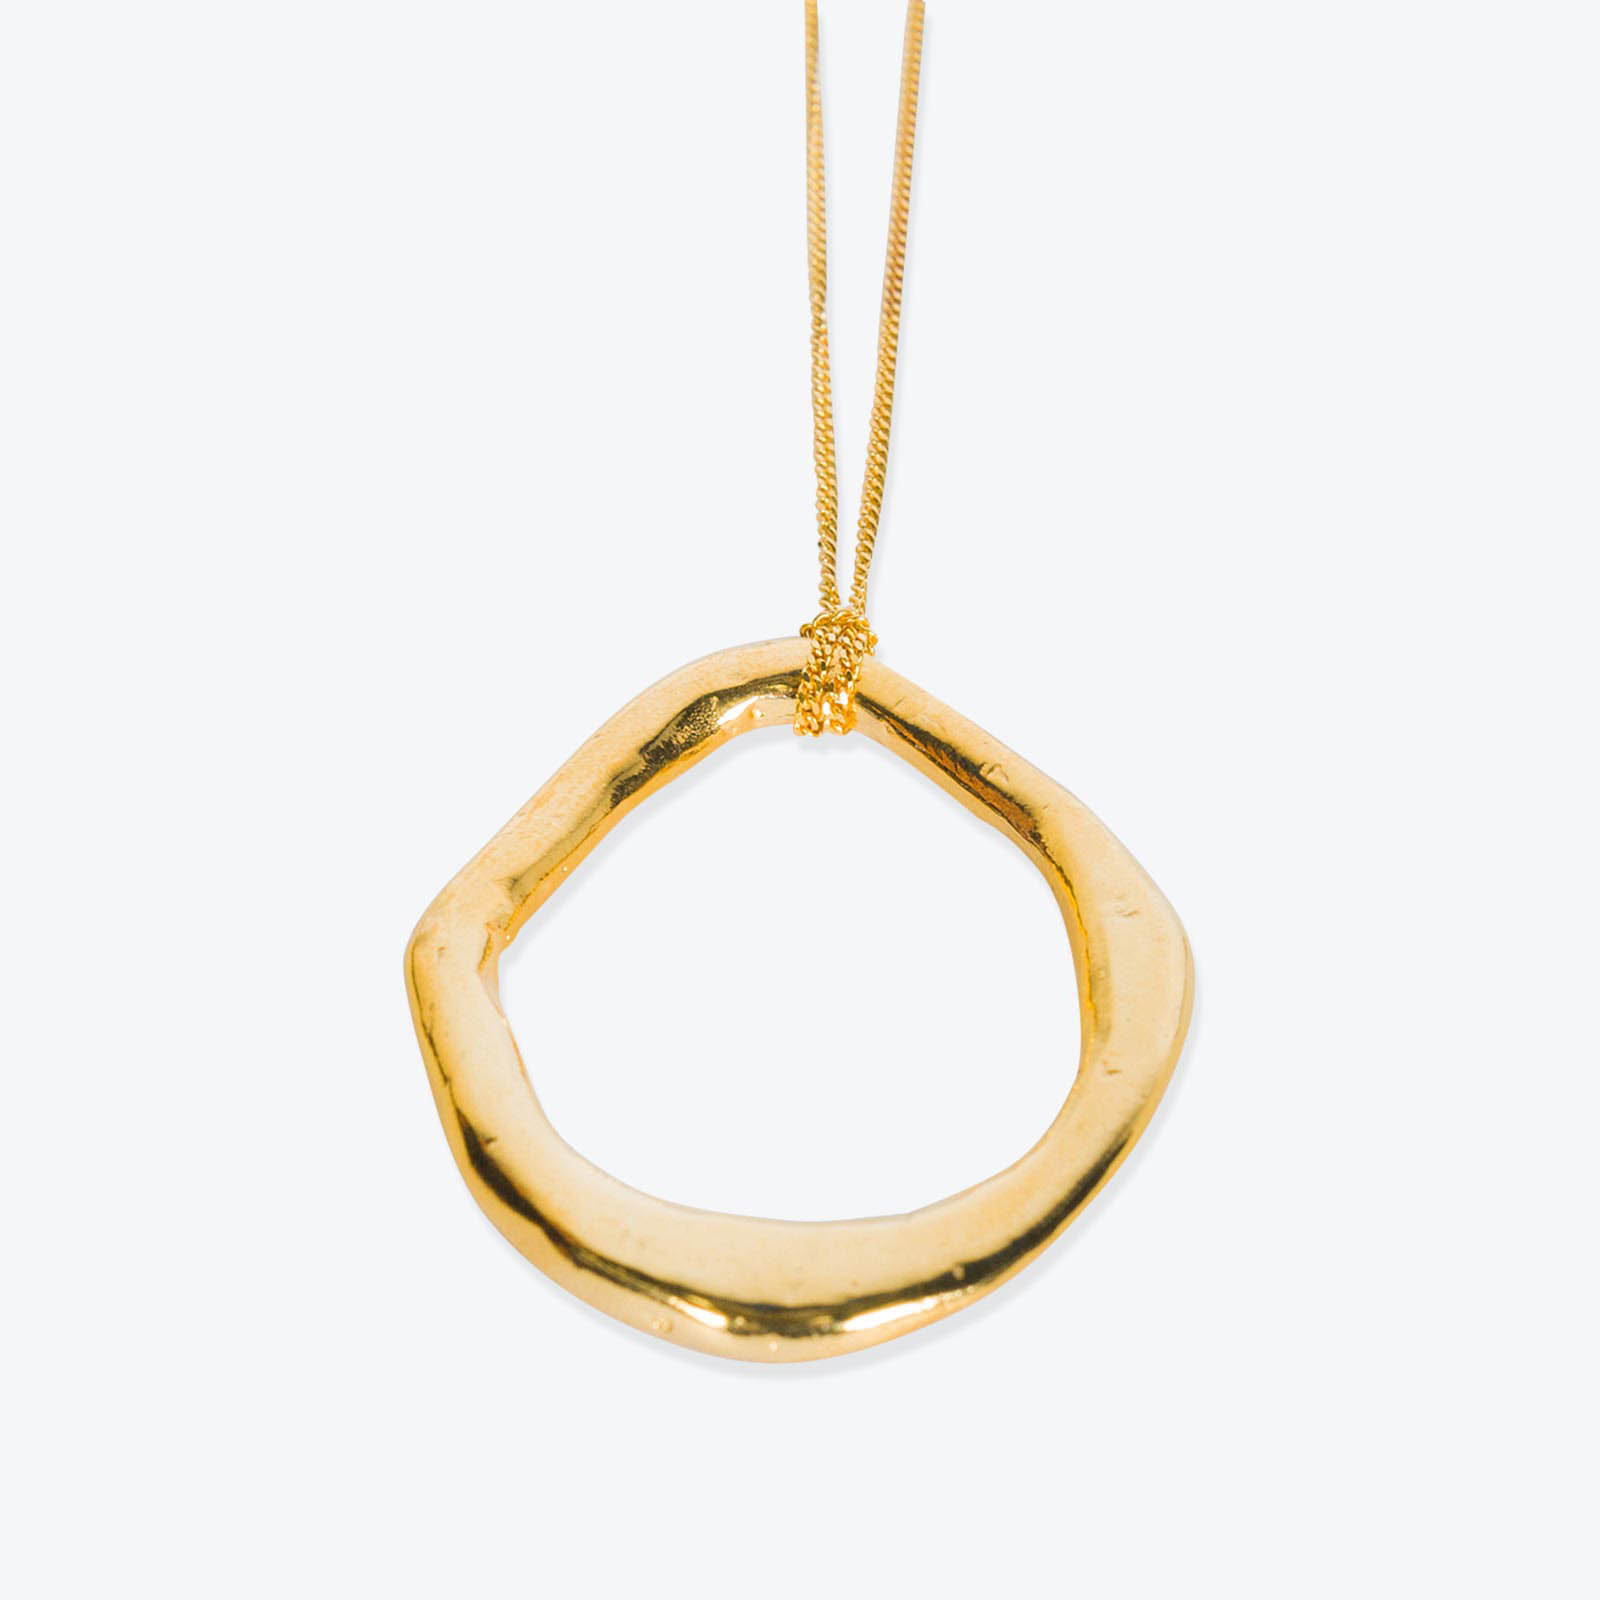 Aphrodite Necklace, Gold Plated Necklace by By Nye